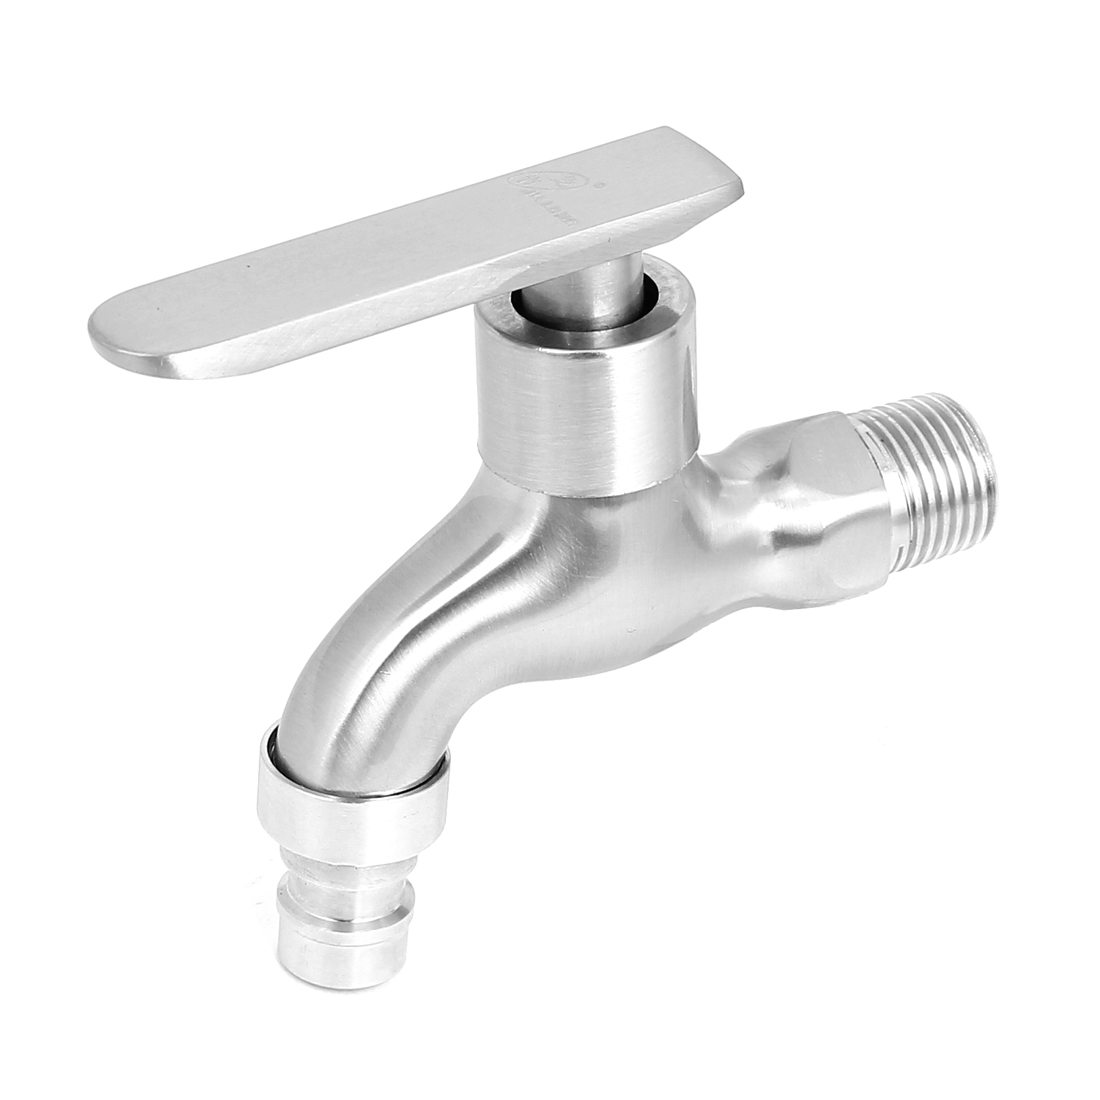 Kitchen Bathroom 20mm Male Threaded Metal 90 Degree Turn Water Faucet Tap